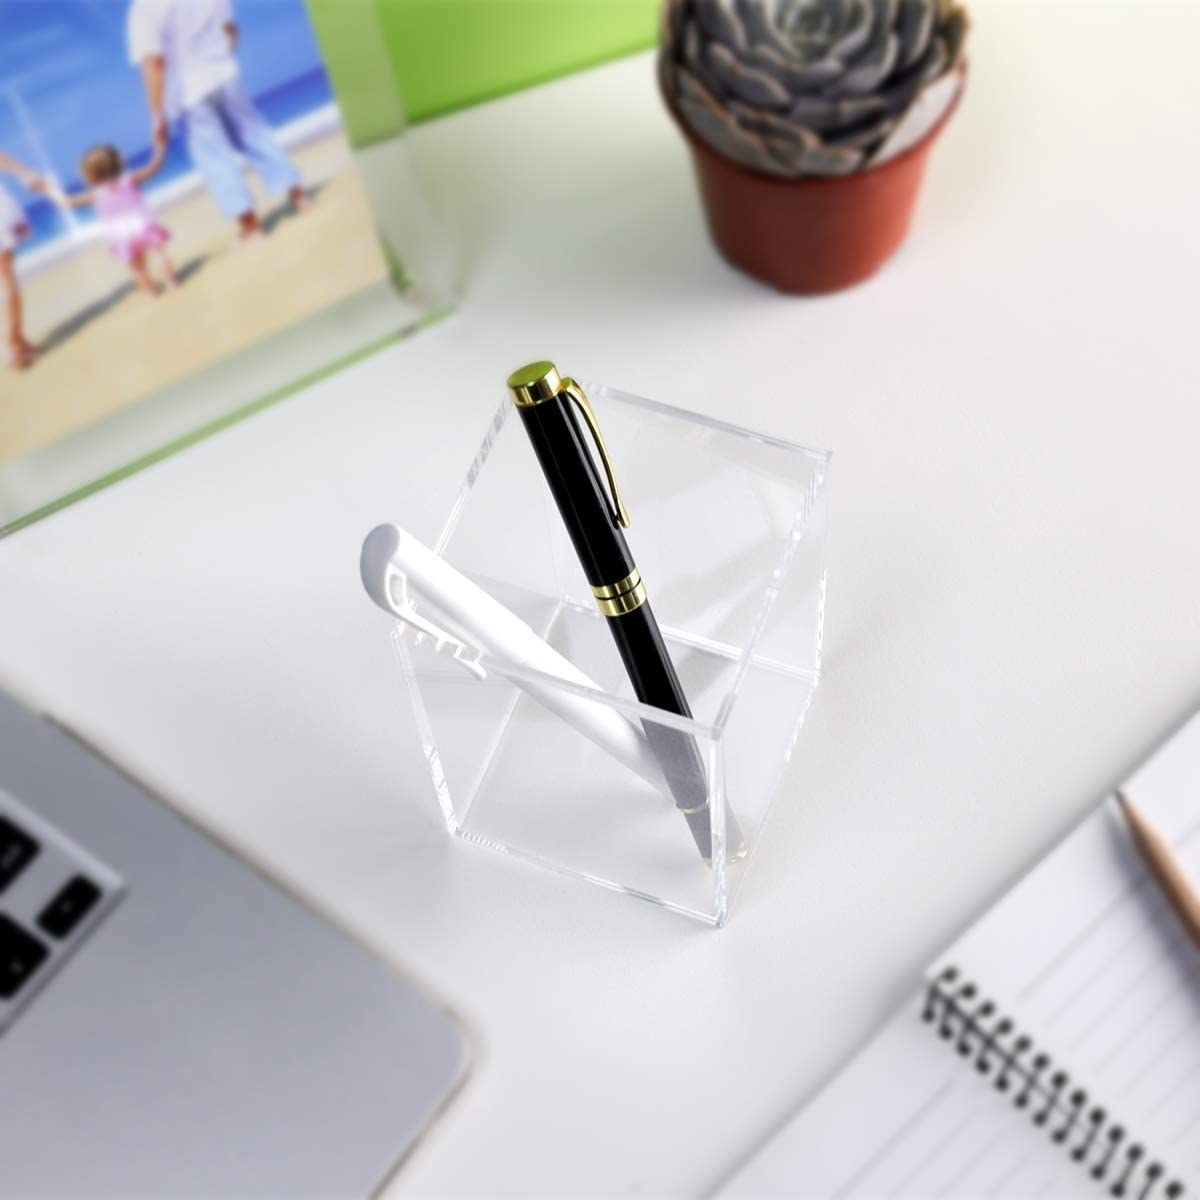 acrylic container on desk